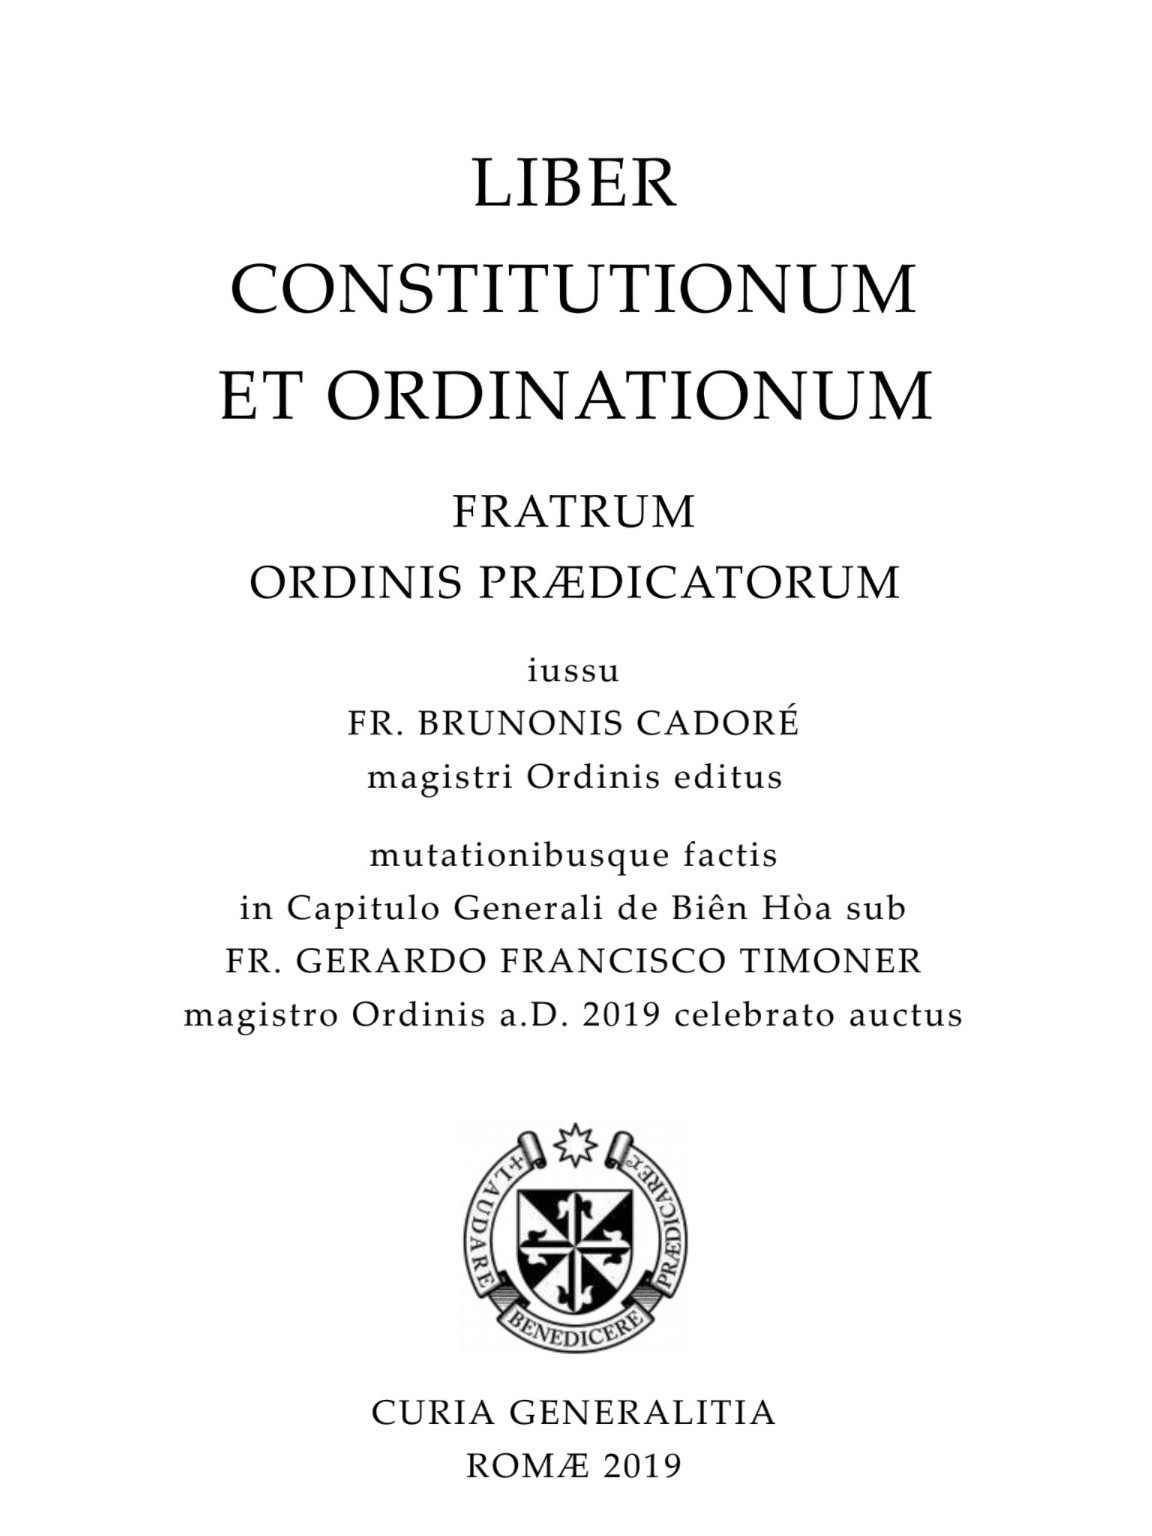 Liber Constitutionum et Ordinationum 2019